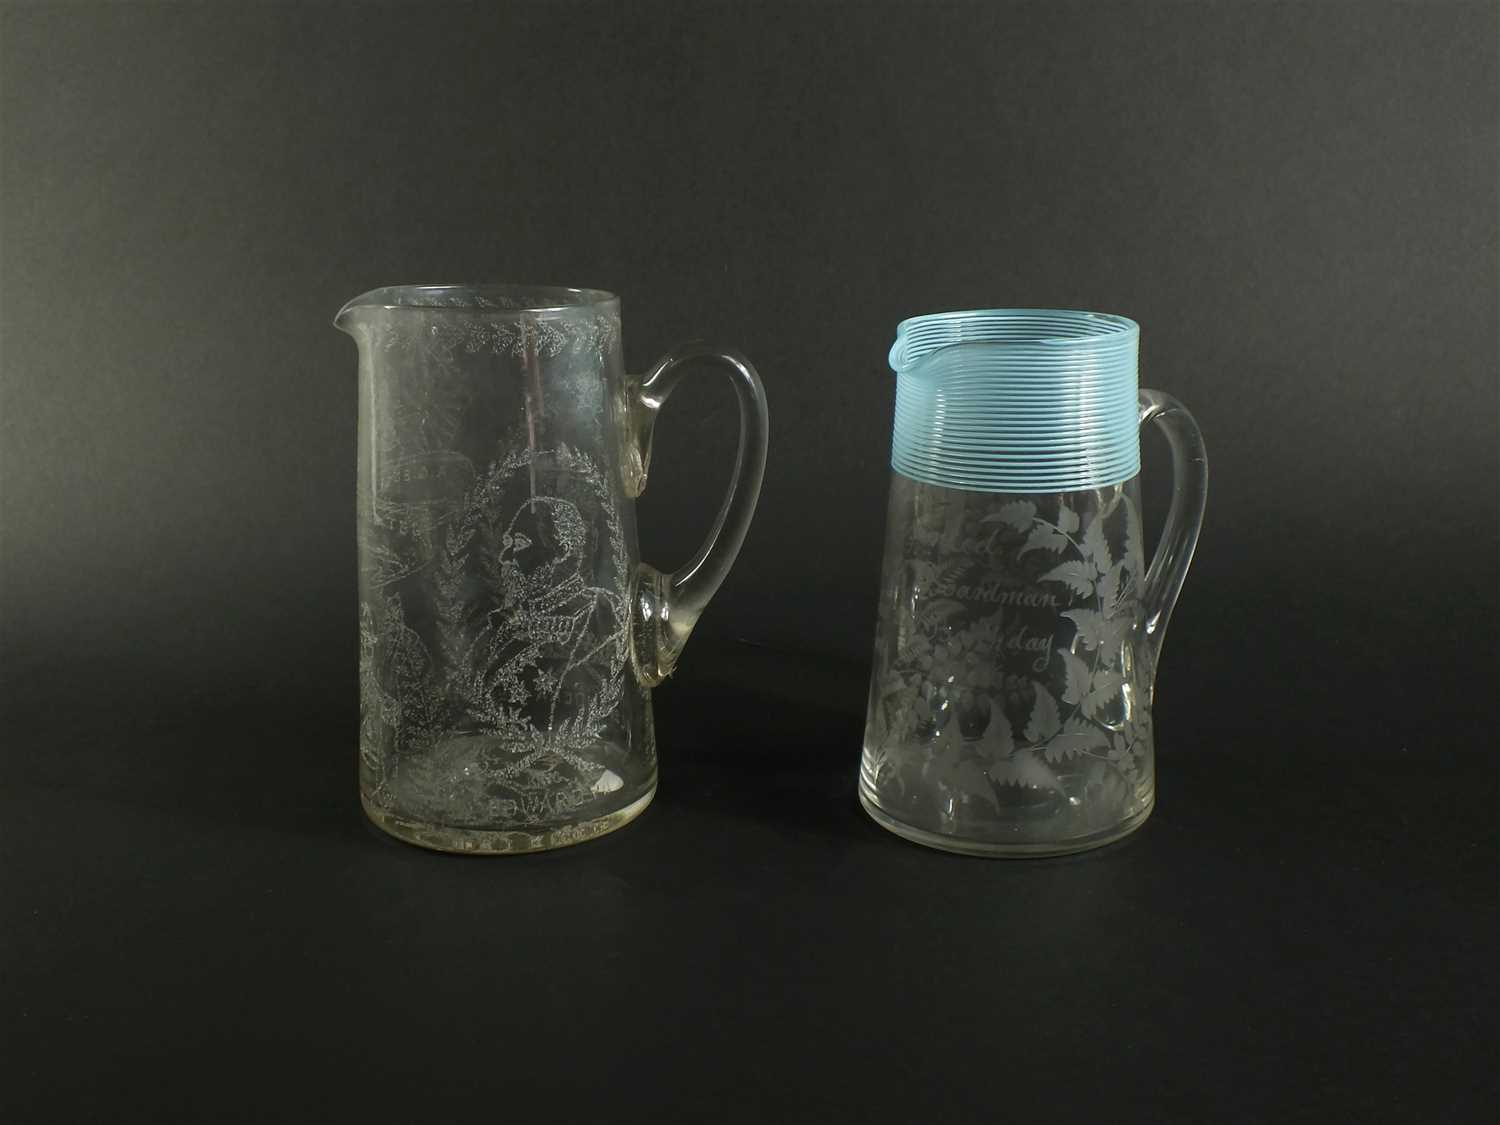 Lot 115 - Two English glass water jugs